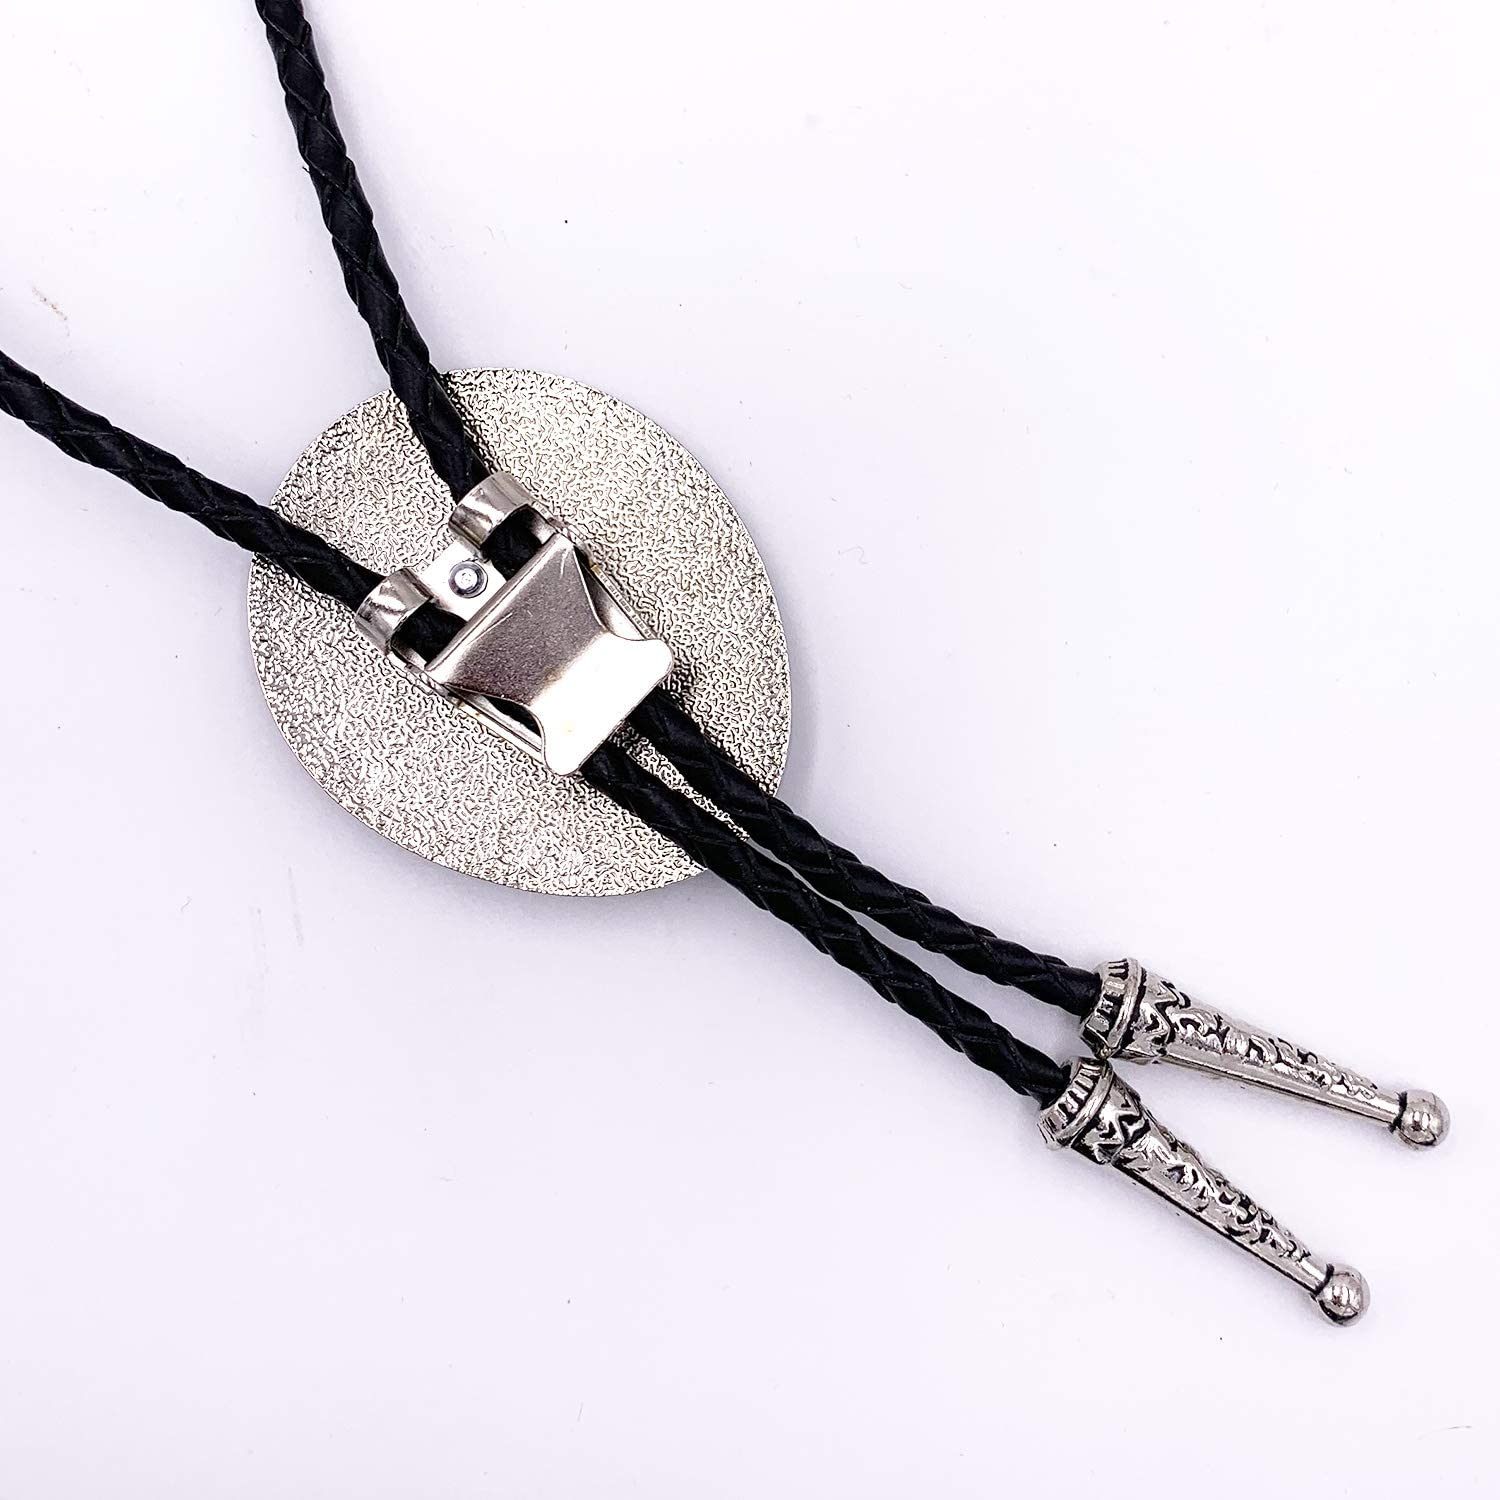 Lanxy Vintage Native American Black Stone Bolo Tie For Men Western Cowboy Genuine Leather Rope